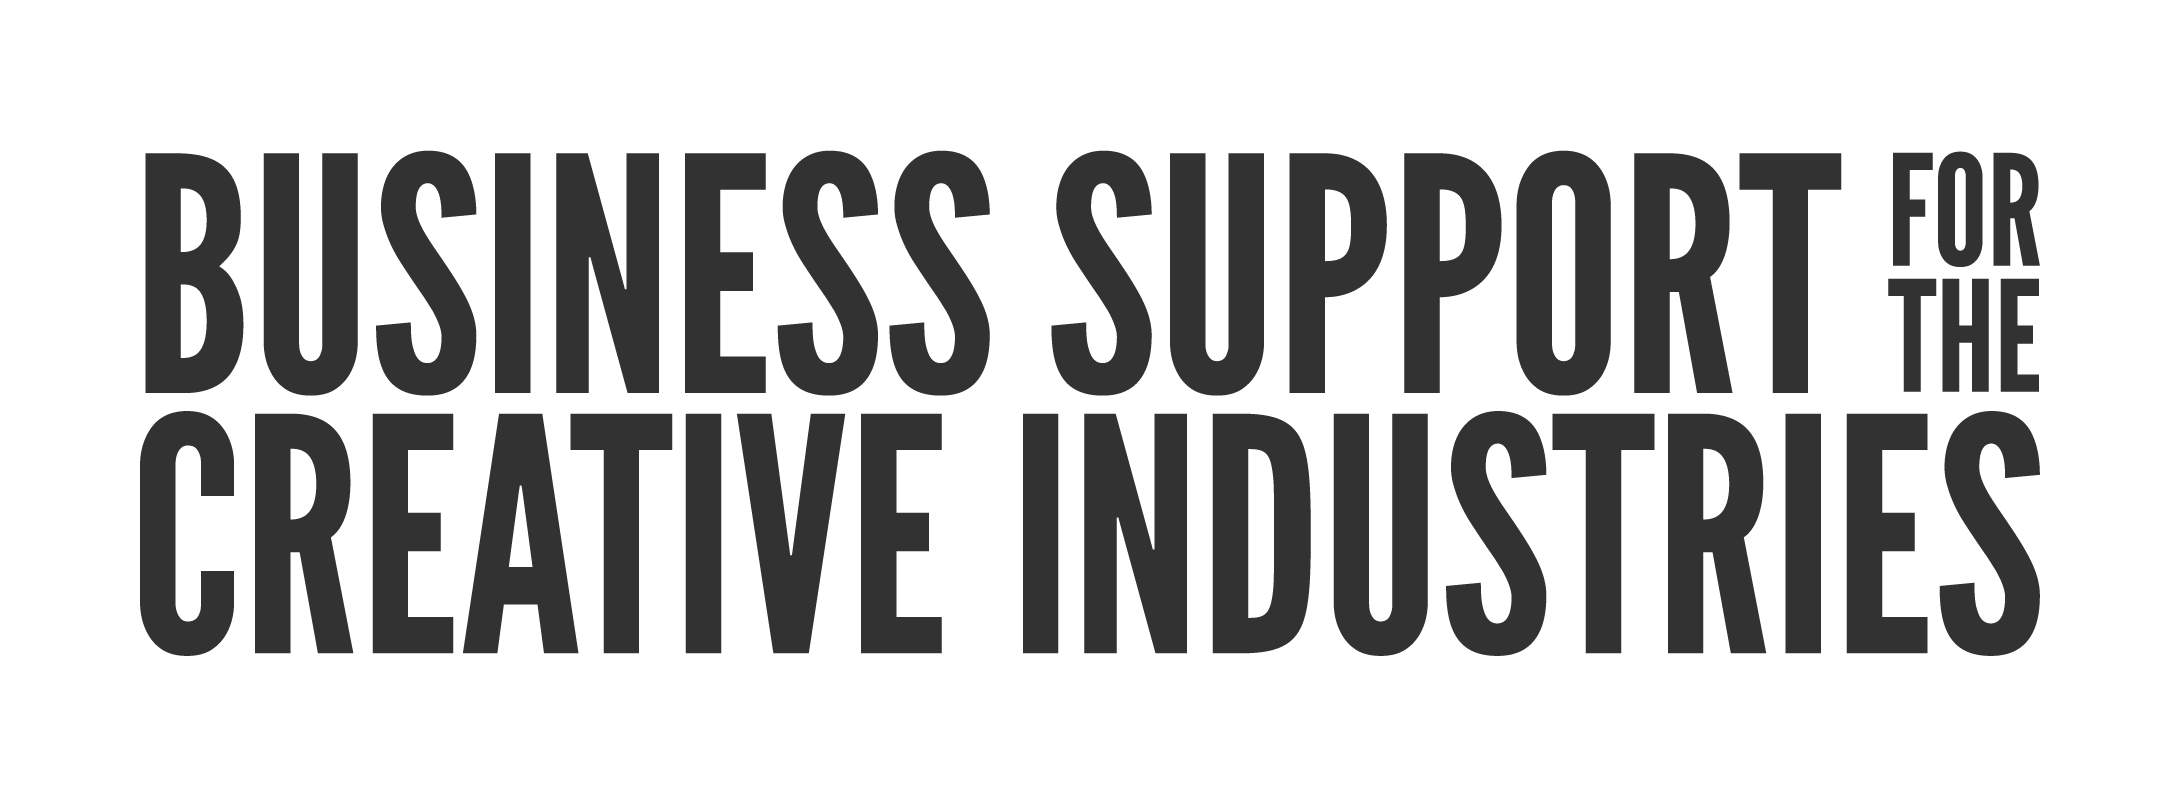 Business Support for the Creative Industries Title